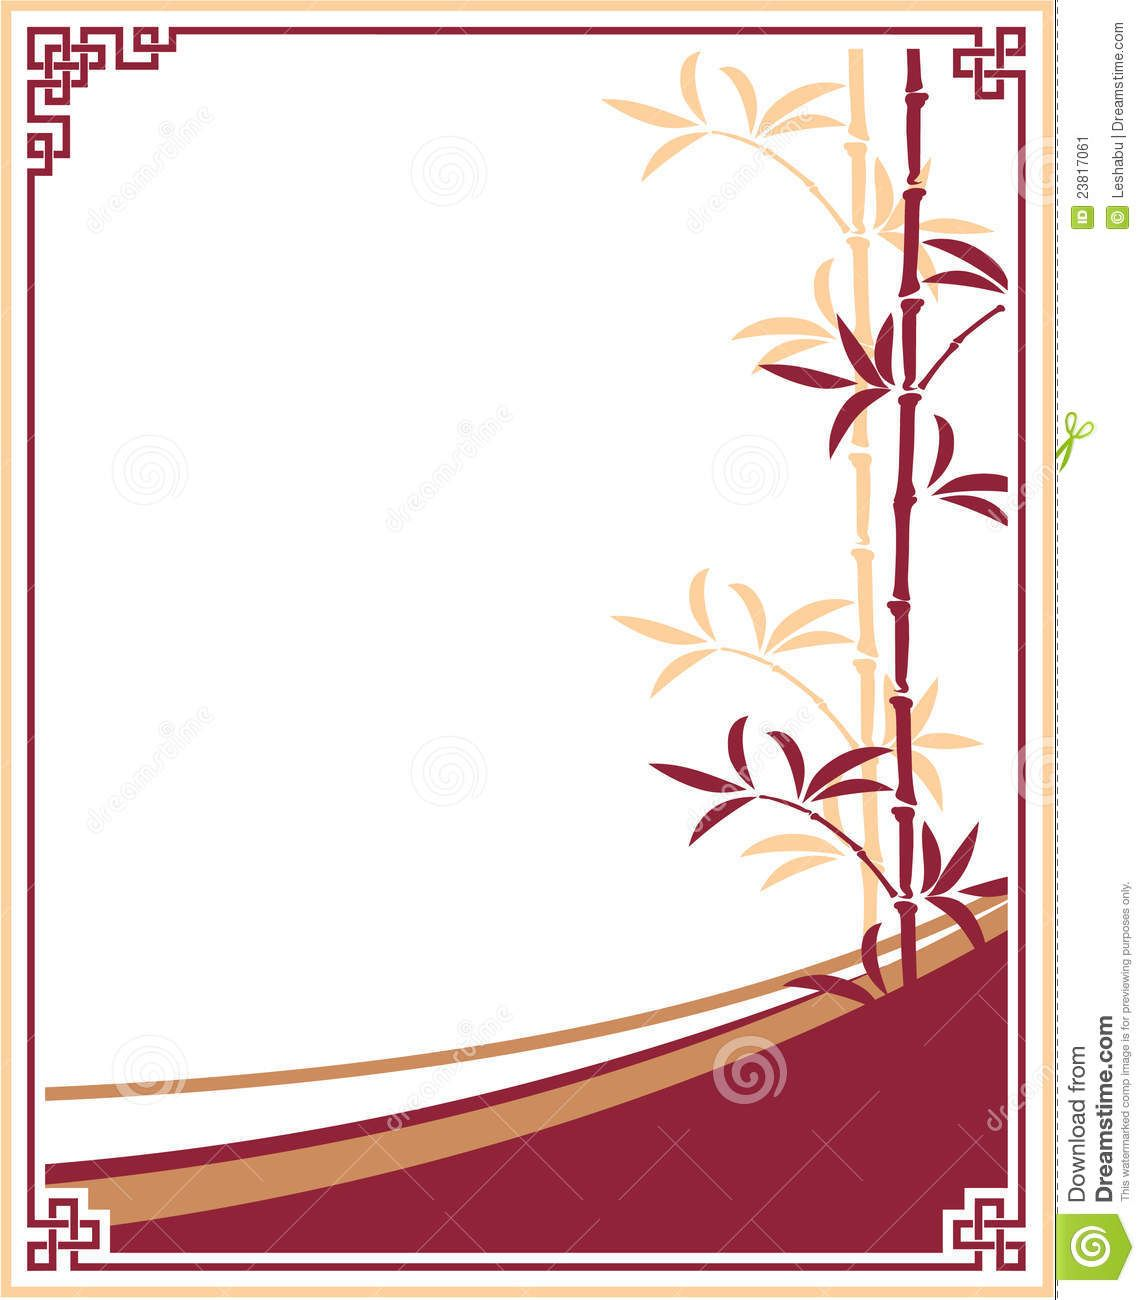 Oriental - Chinese - Template Frame With Bamboo Stock Image ...